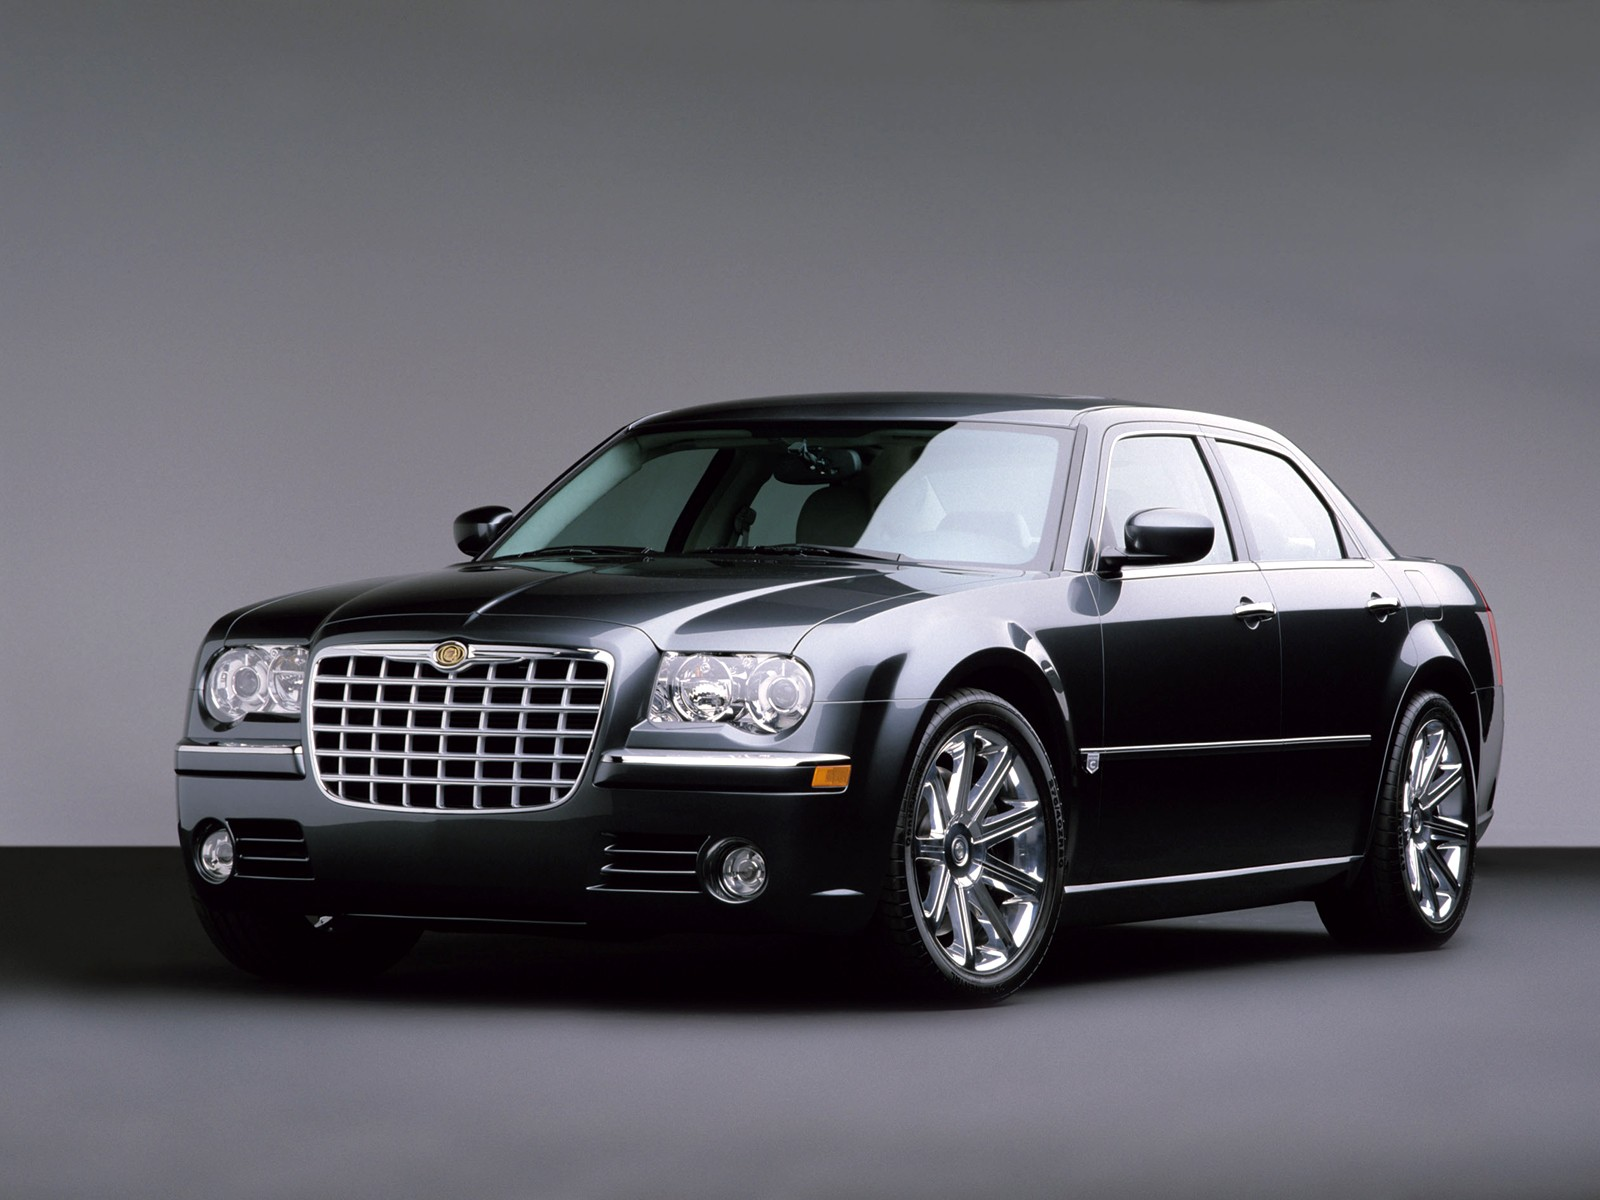 chrysler produces srt8 models for three hundred and jeep grand cherokee. Black Bedroom Furniture Sets. Home Design Ideas